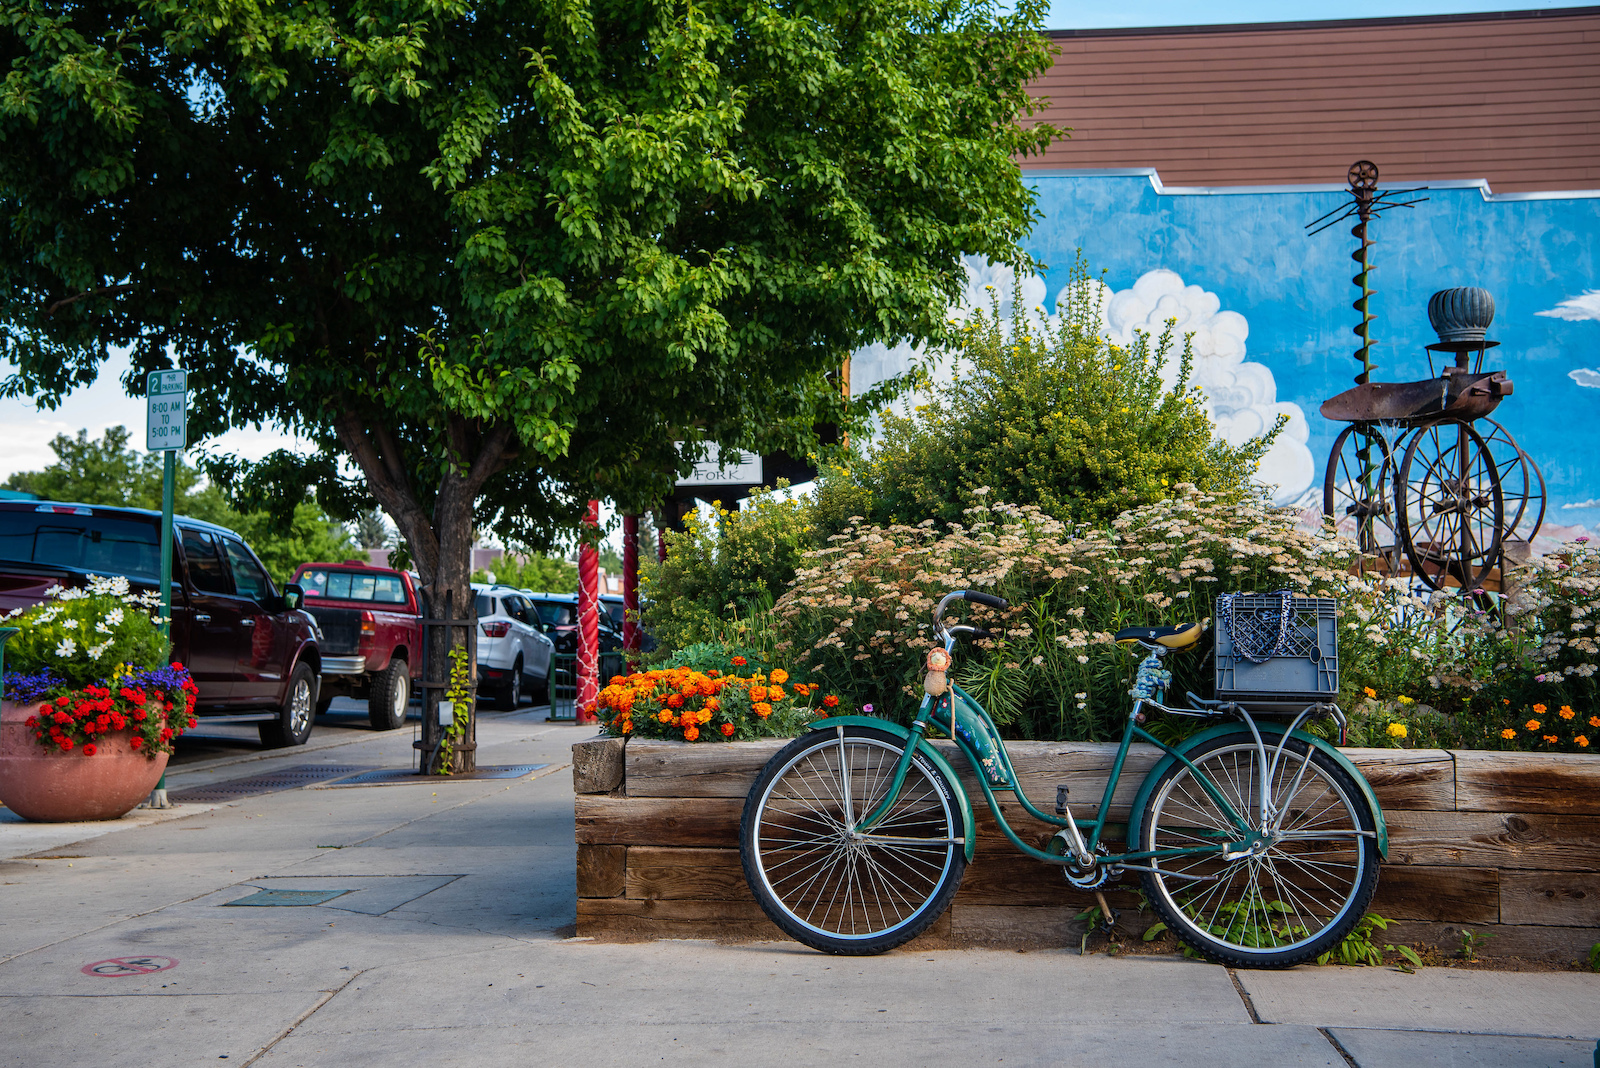 Back to the Trails photos courtesy of Gunnison-Crested Butte Tourism and Prosperity Partnership